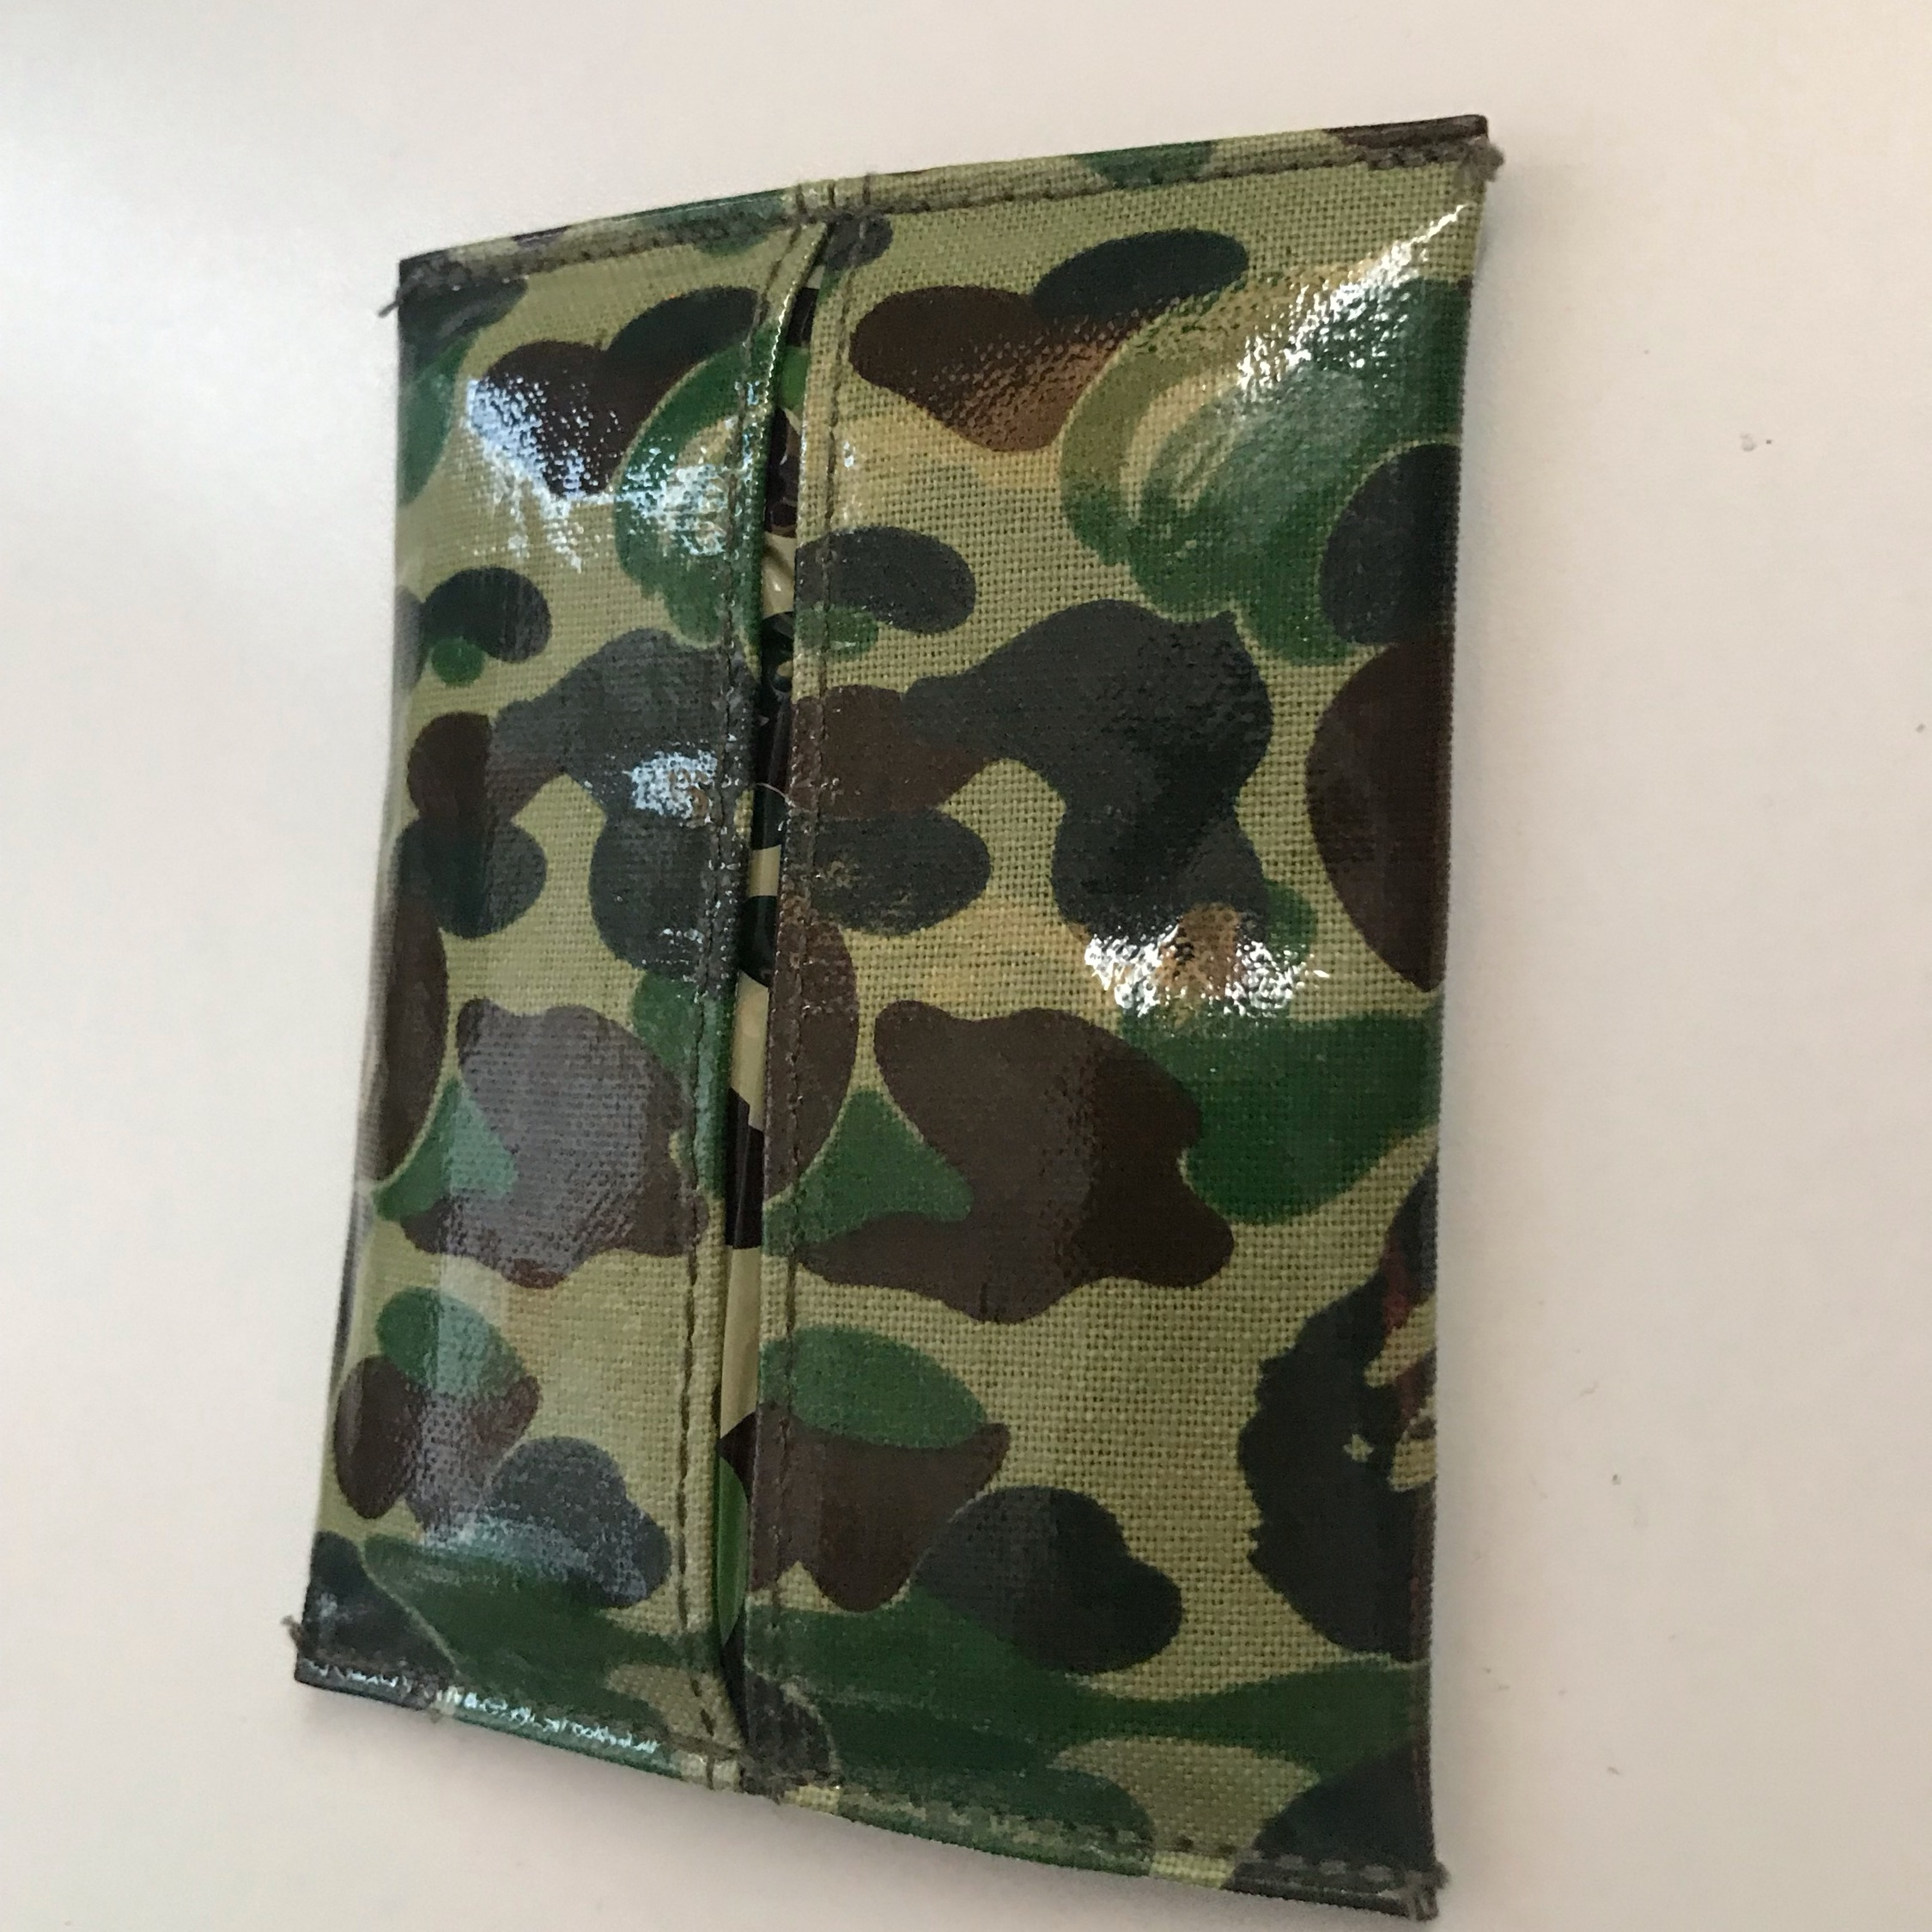 A Bathing Ape Bape Tissue With Tissue Cover Bag